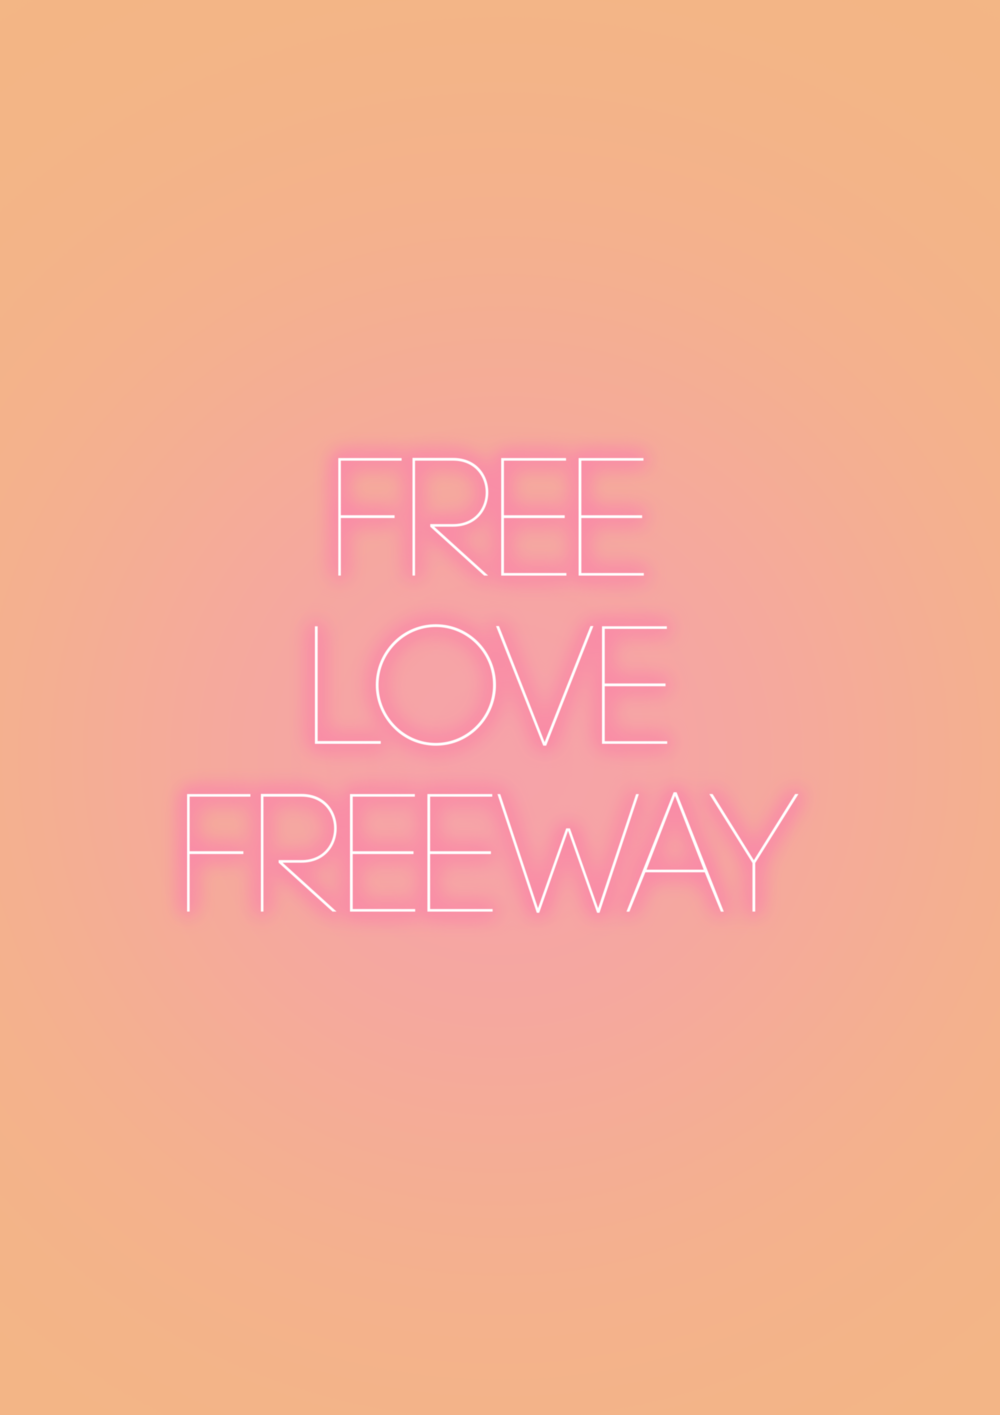 Neon free love freeway.png